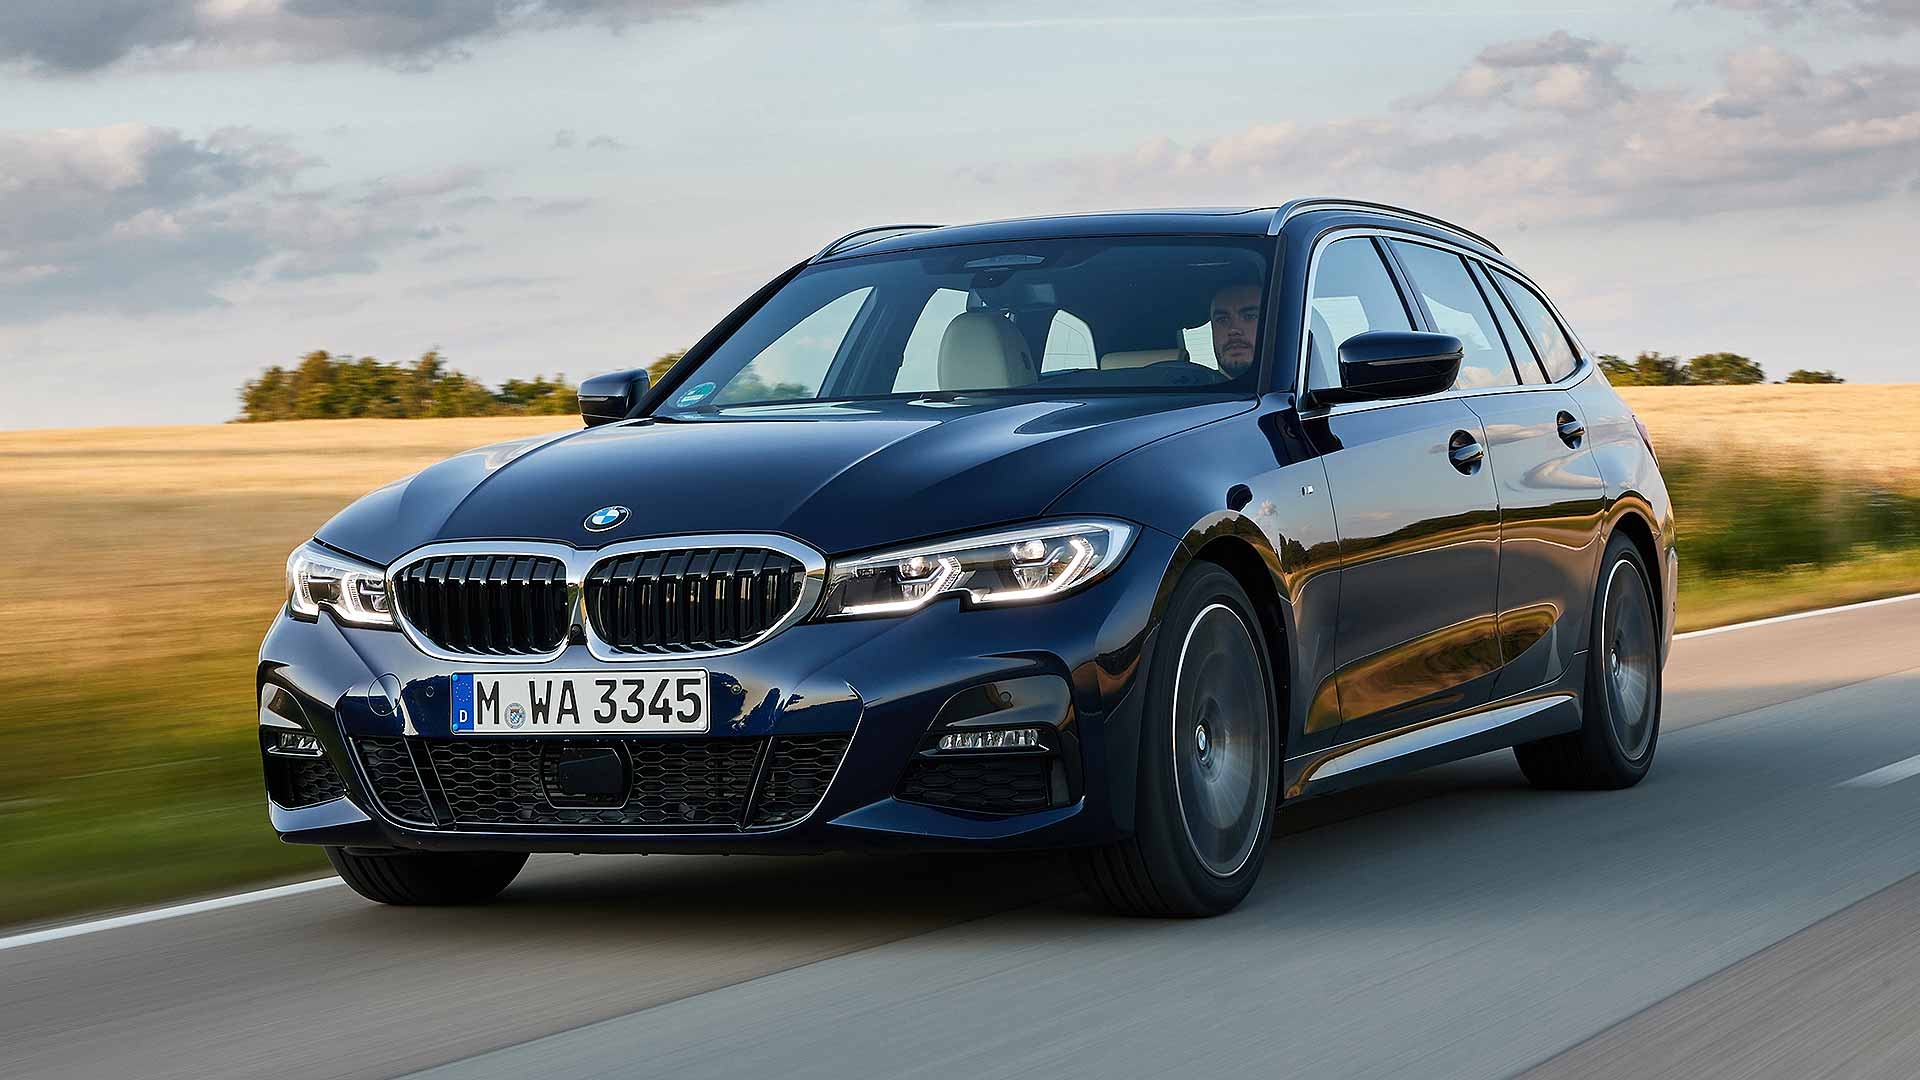 2019 BMW 3 Series Touring review: loads to like